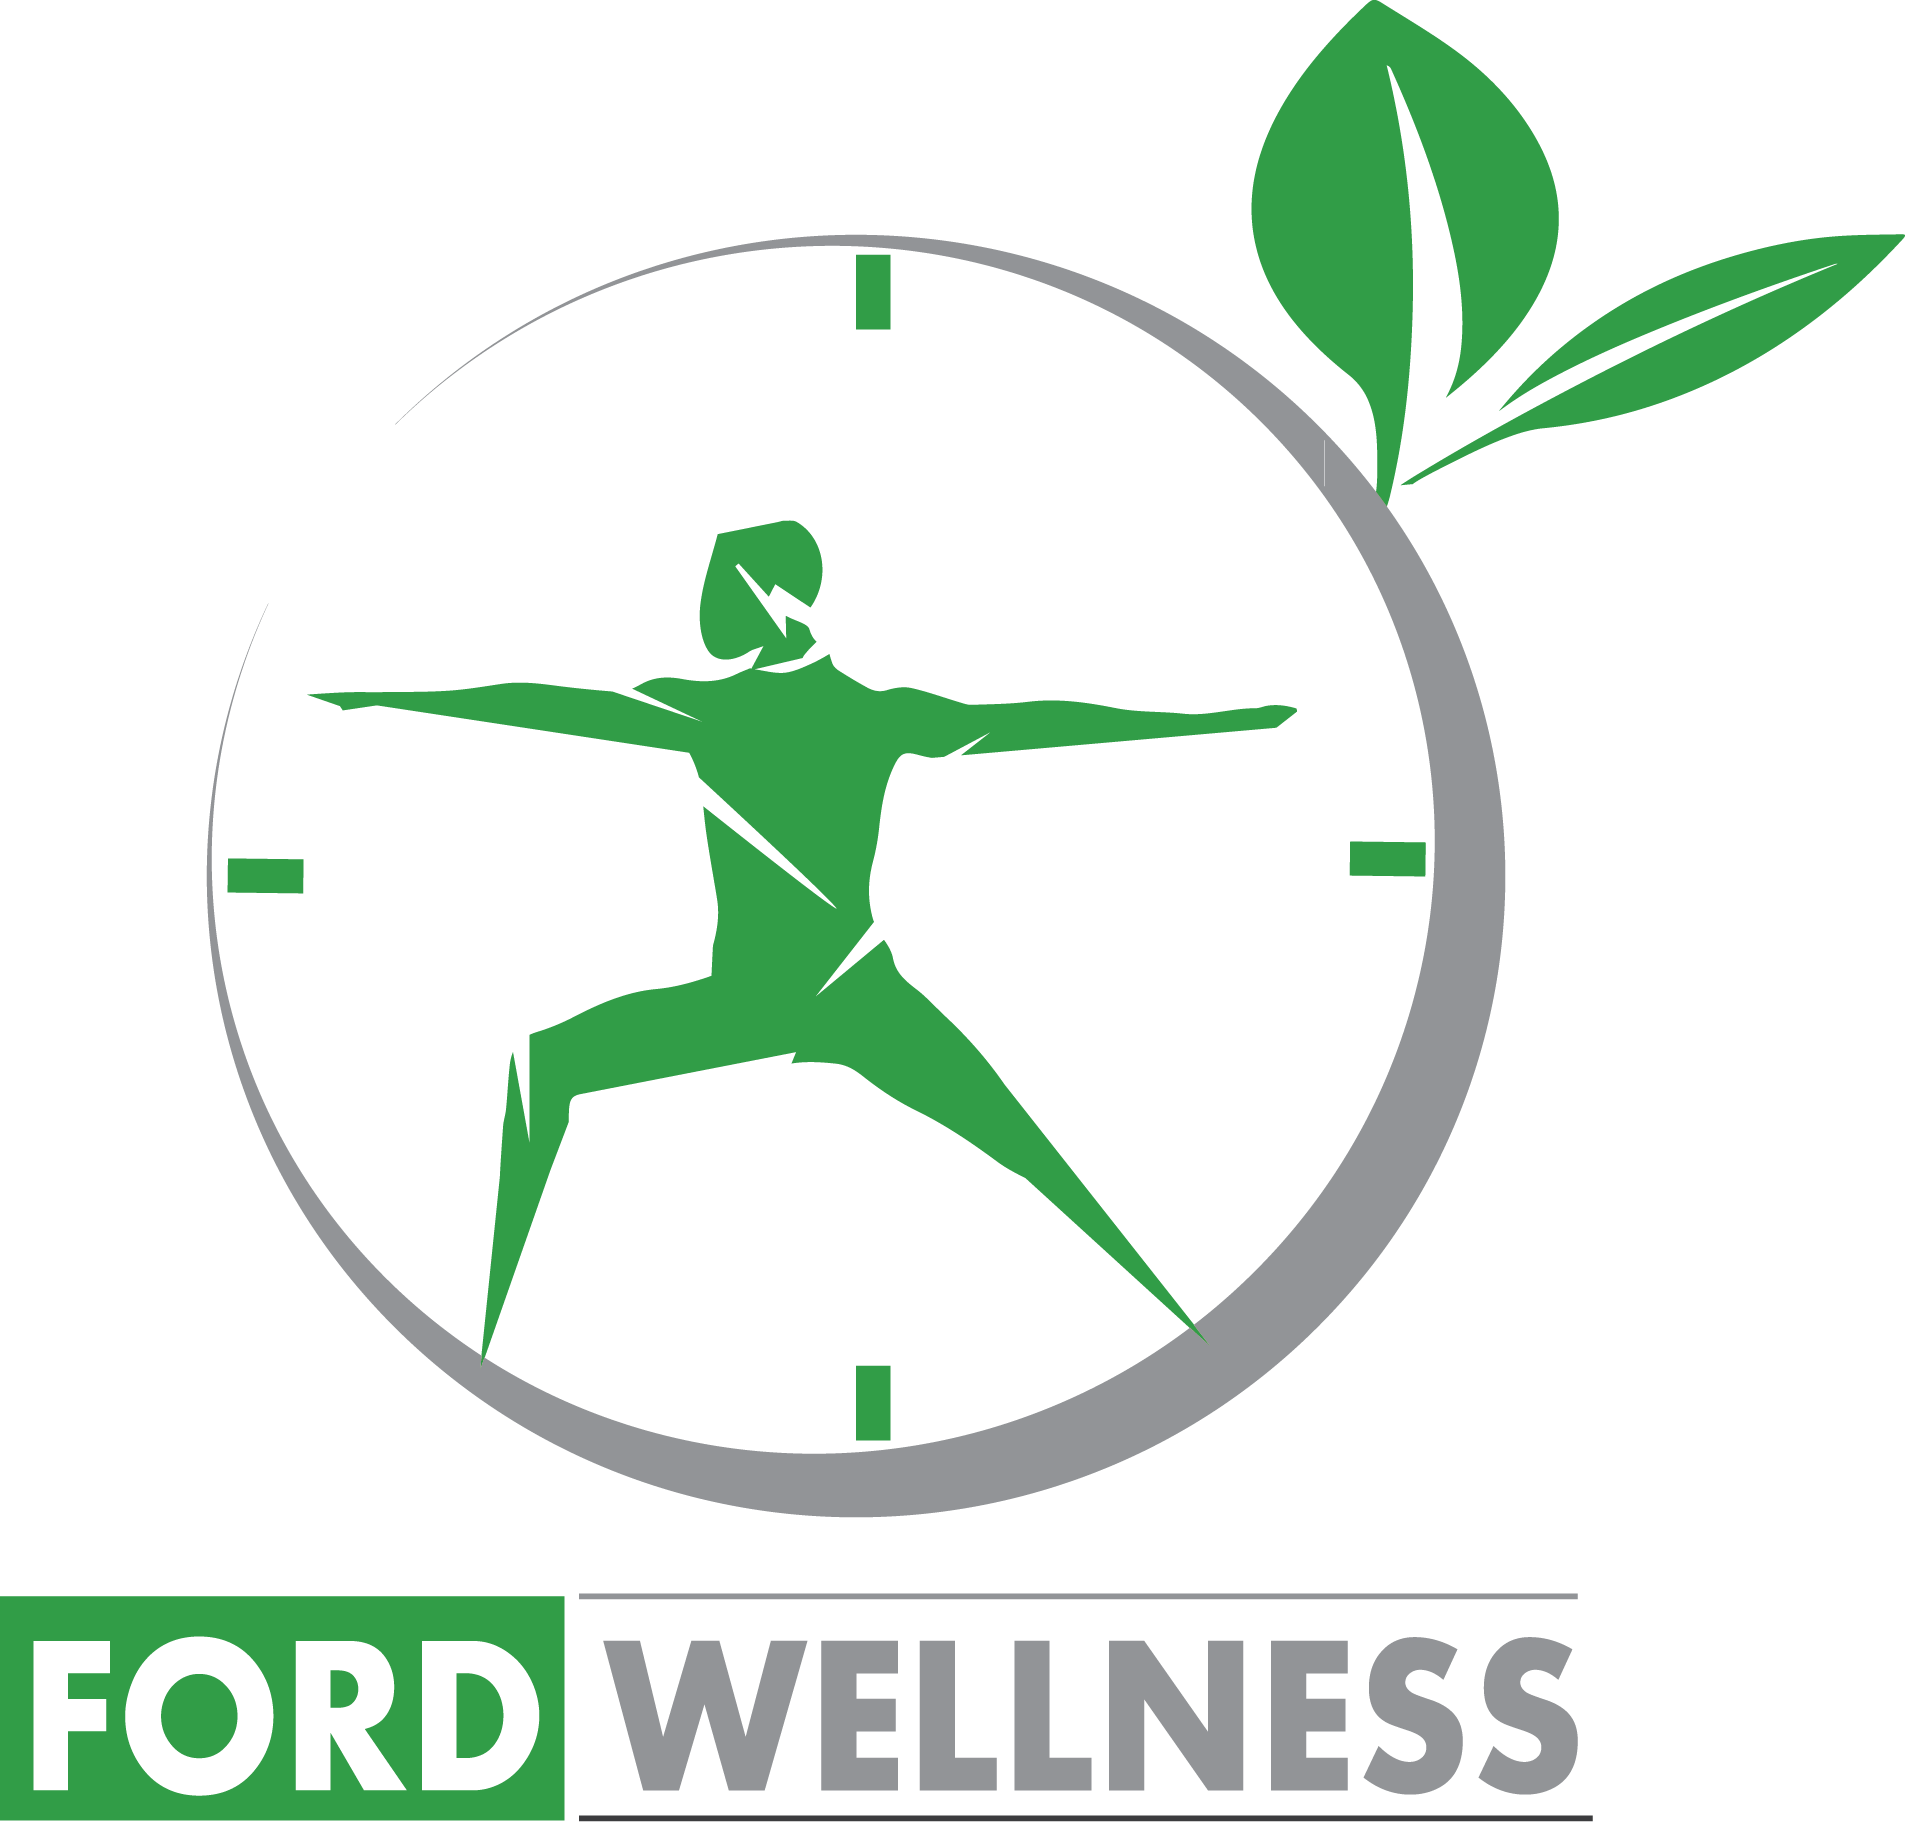 Ford Wellness Icon